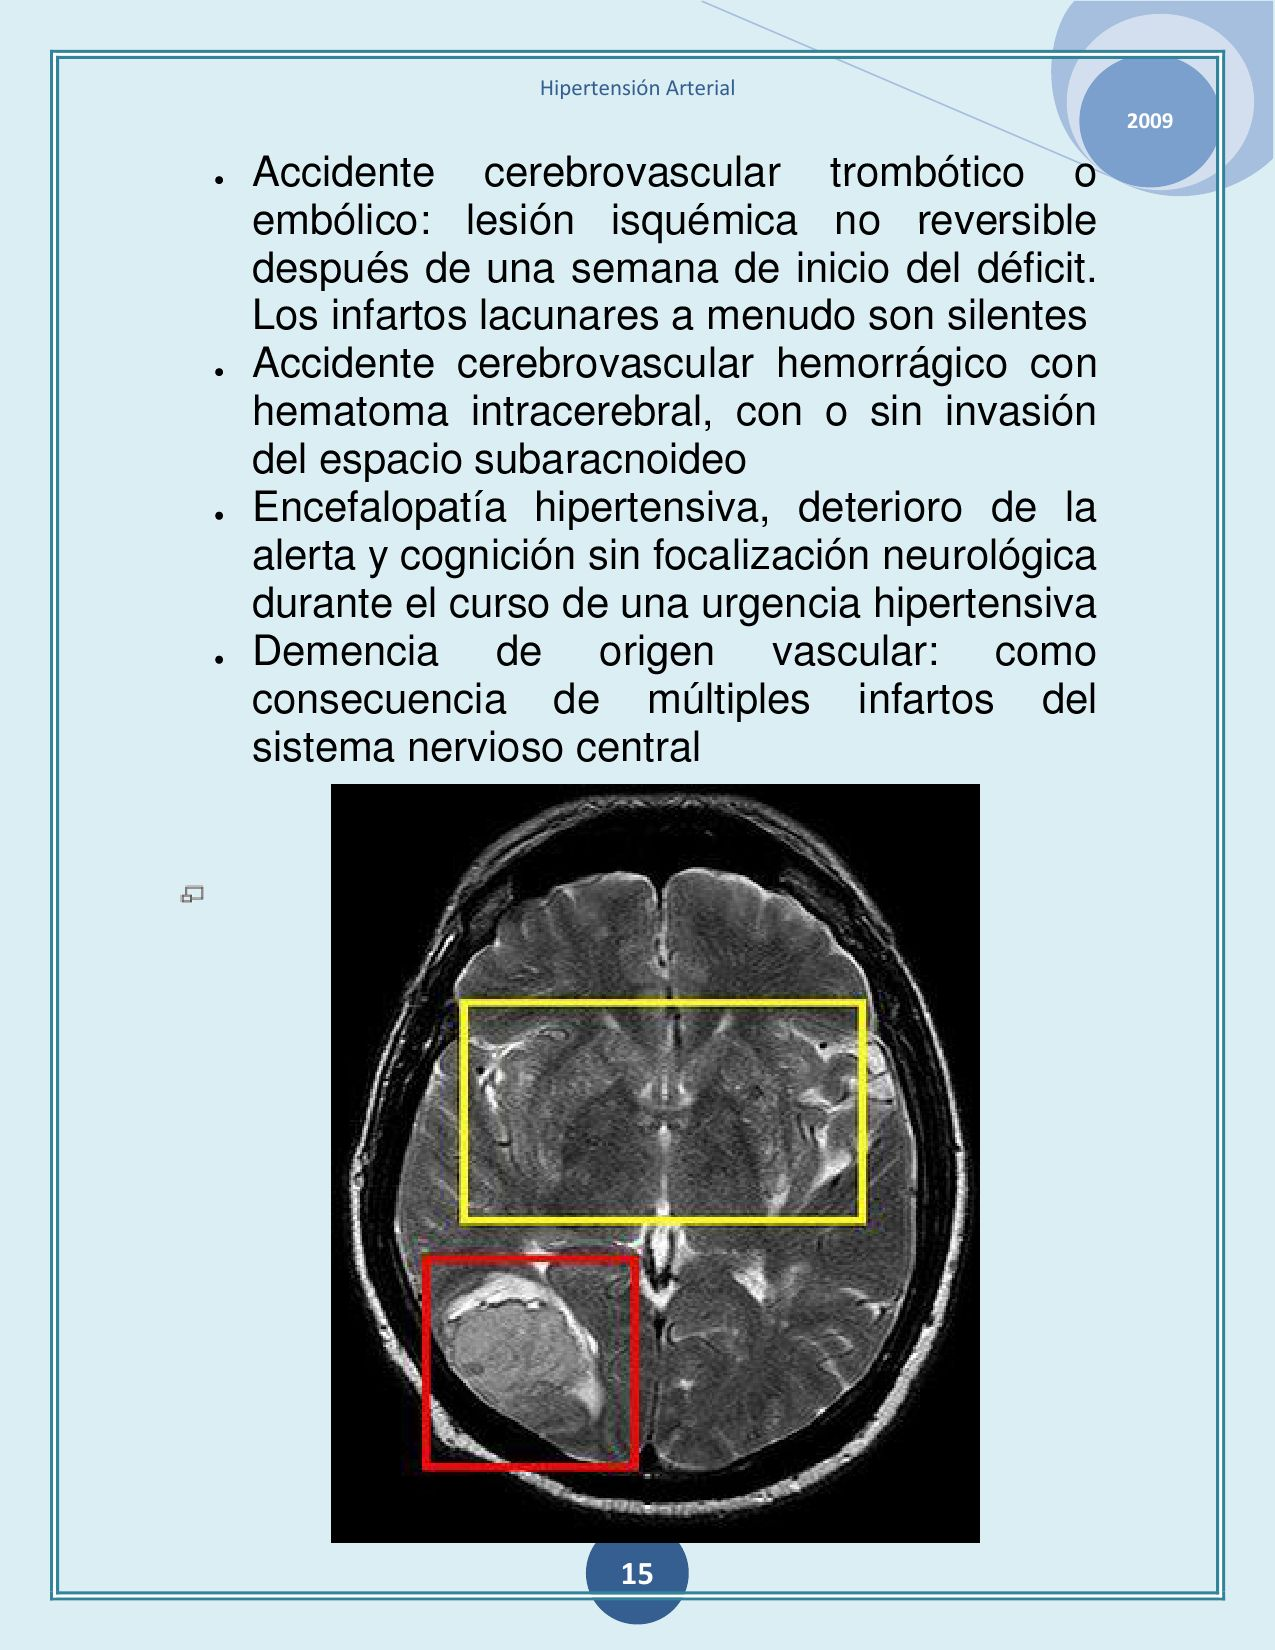 Accidente cerebrovascular hemorrágico de emergencia hipertensivo